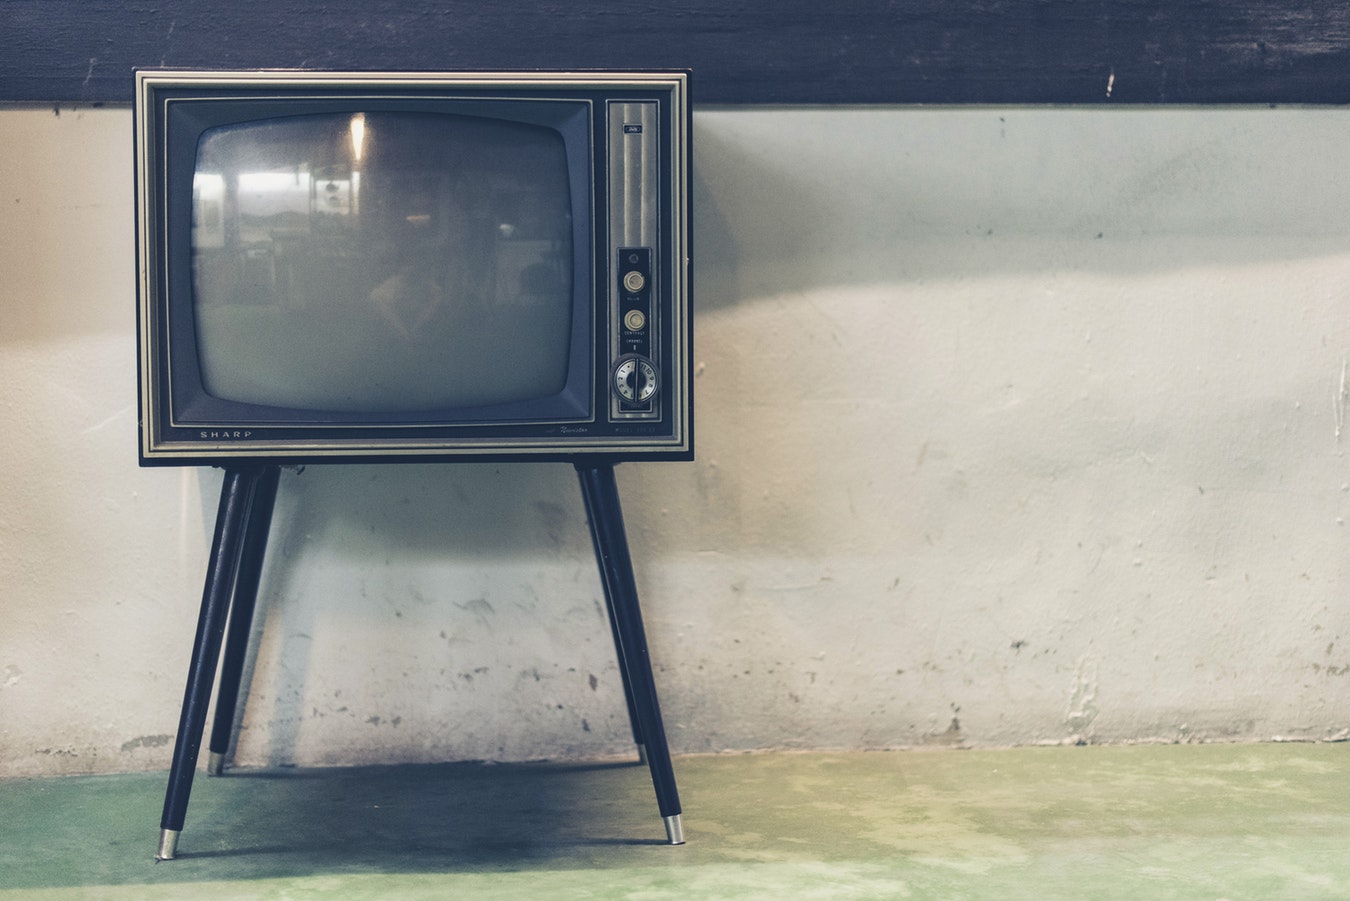 An old school television-There are many movies available today that honor our veterans.